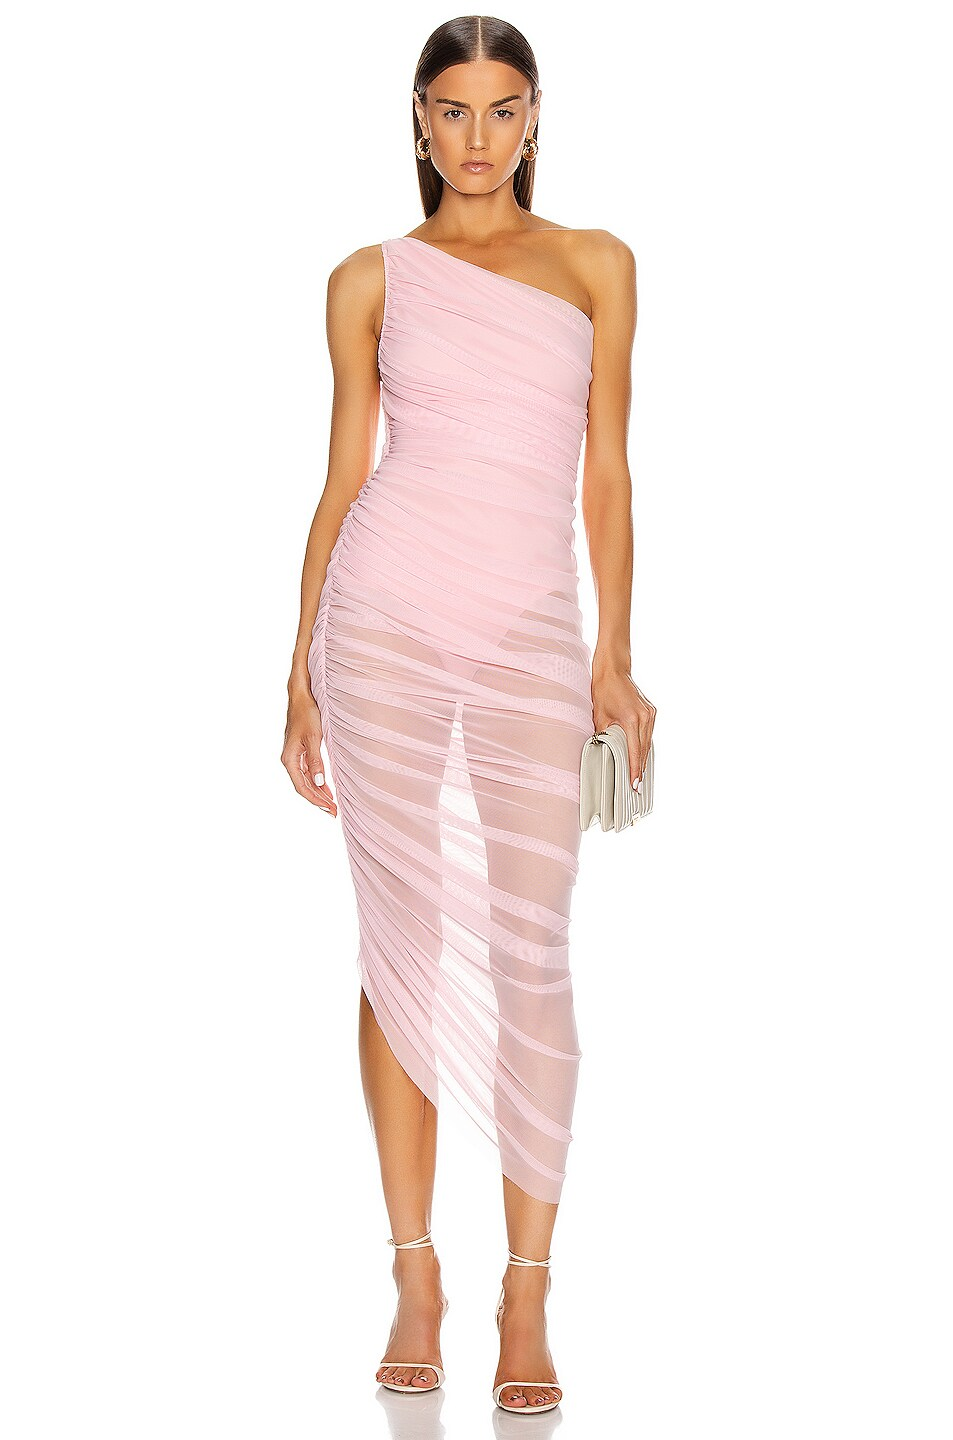 Image 1 of Norma Kamali for FWRD Diana Gown in Bubble Gum Mesh